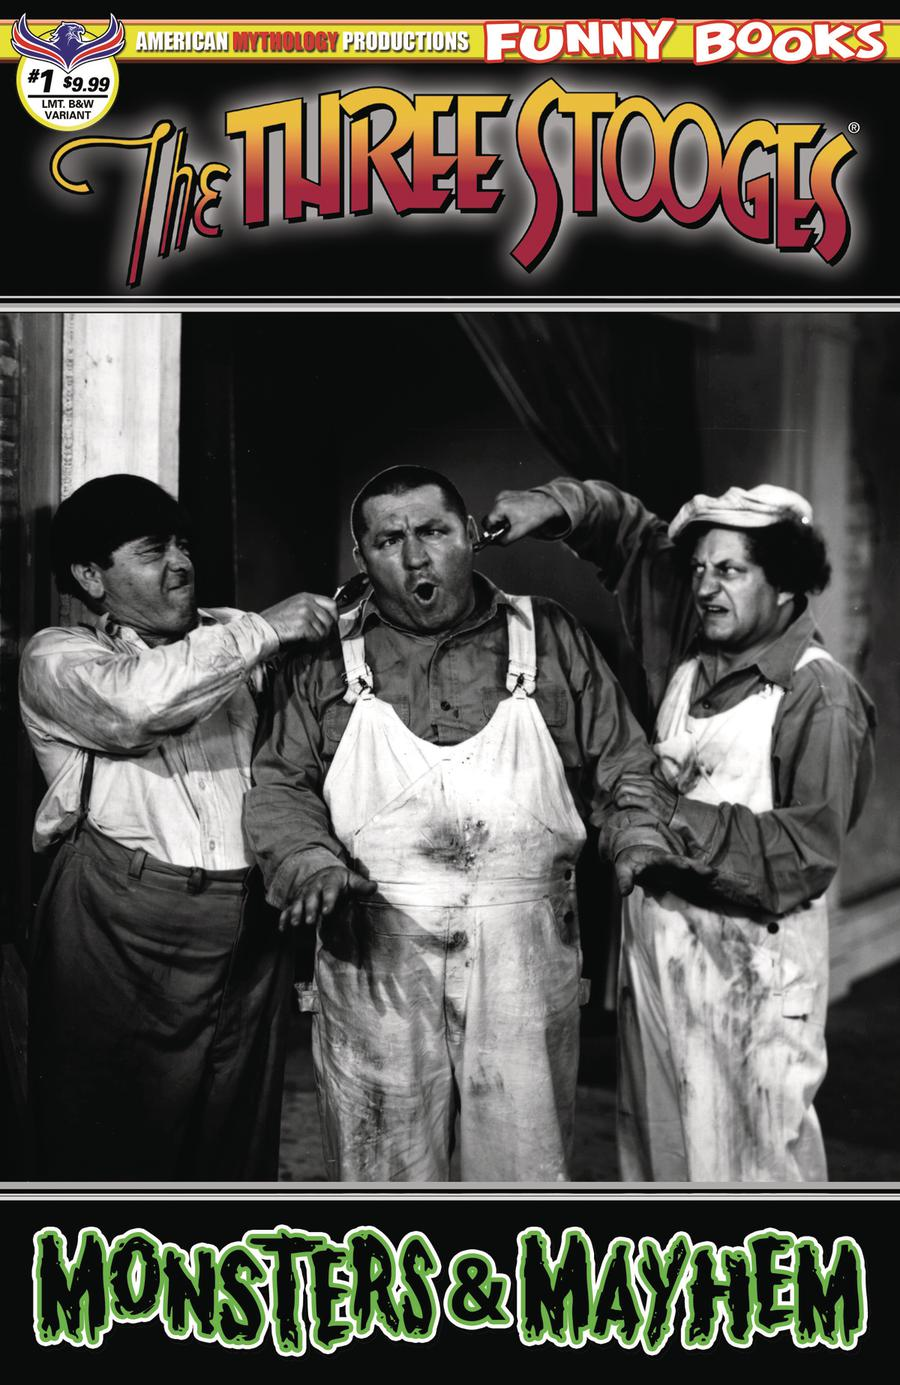 Three Stooges Monsters & Mayhem #1 Cover C Limited Edition Black & White Photo Cover